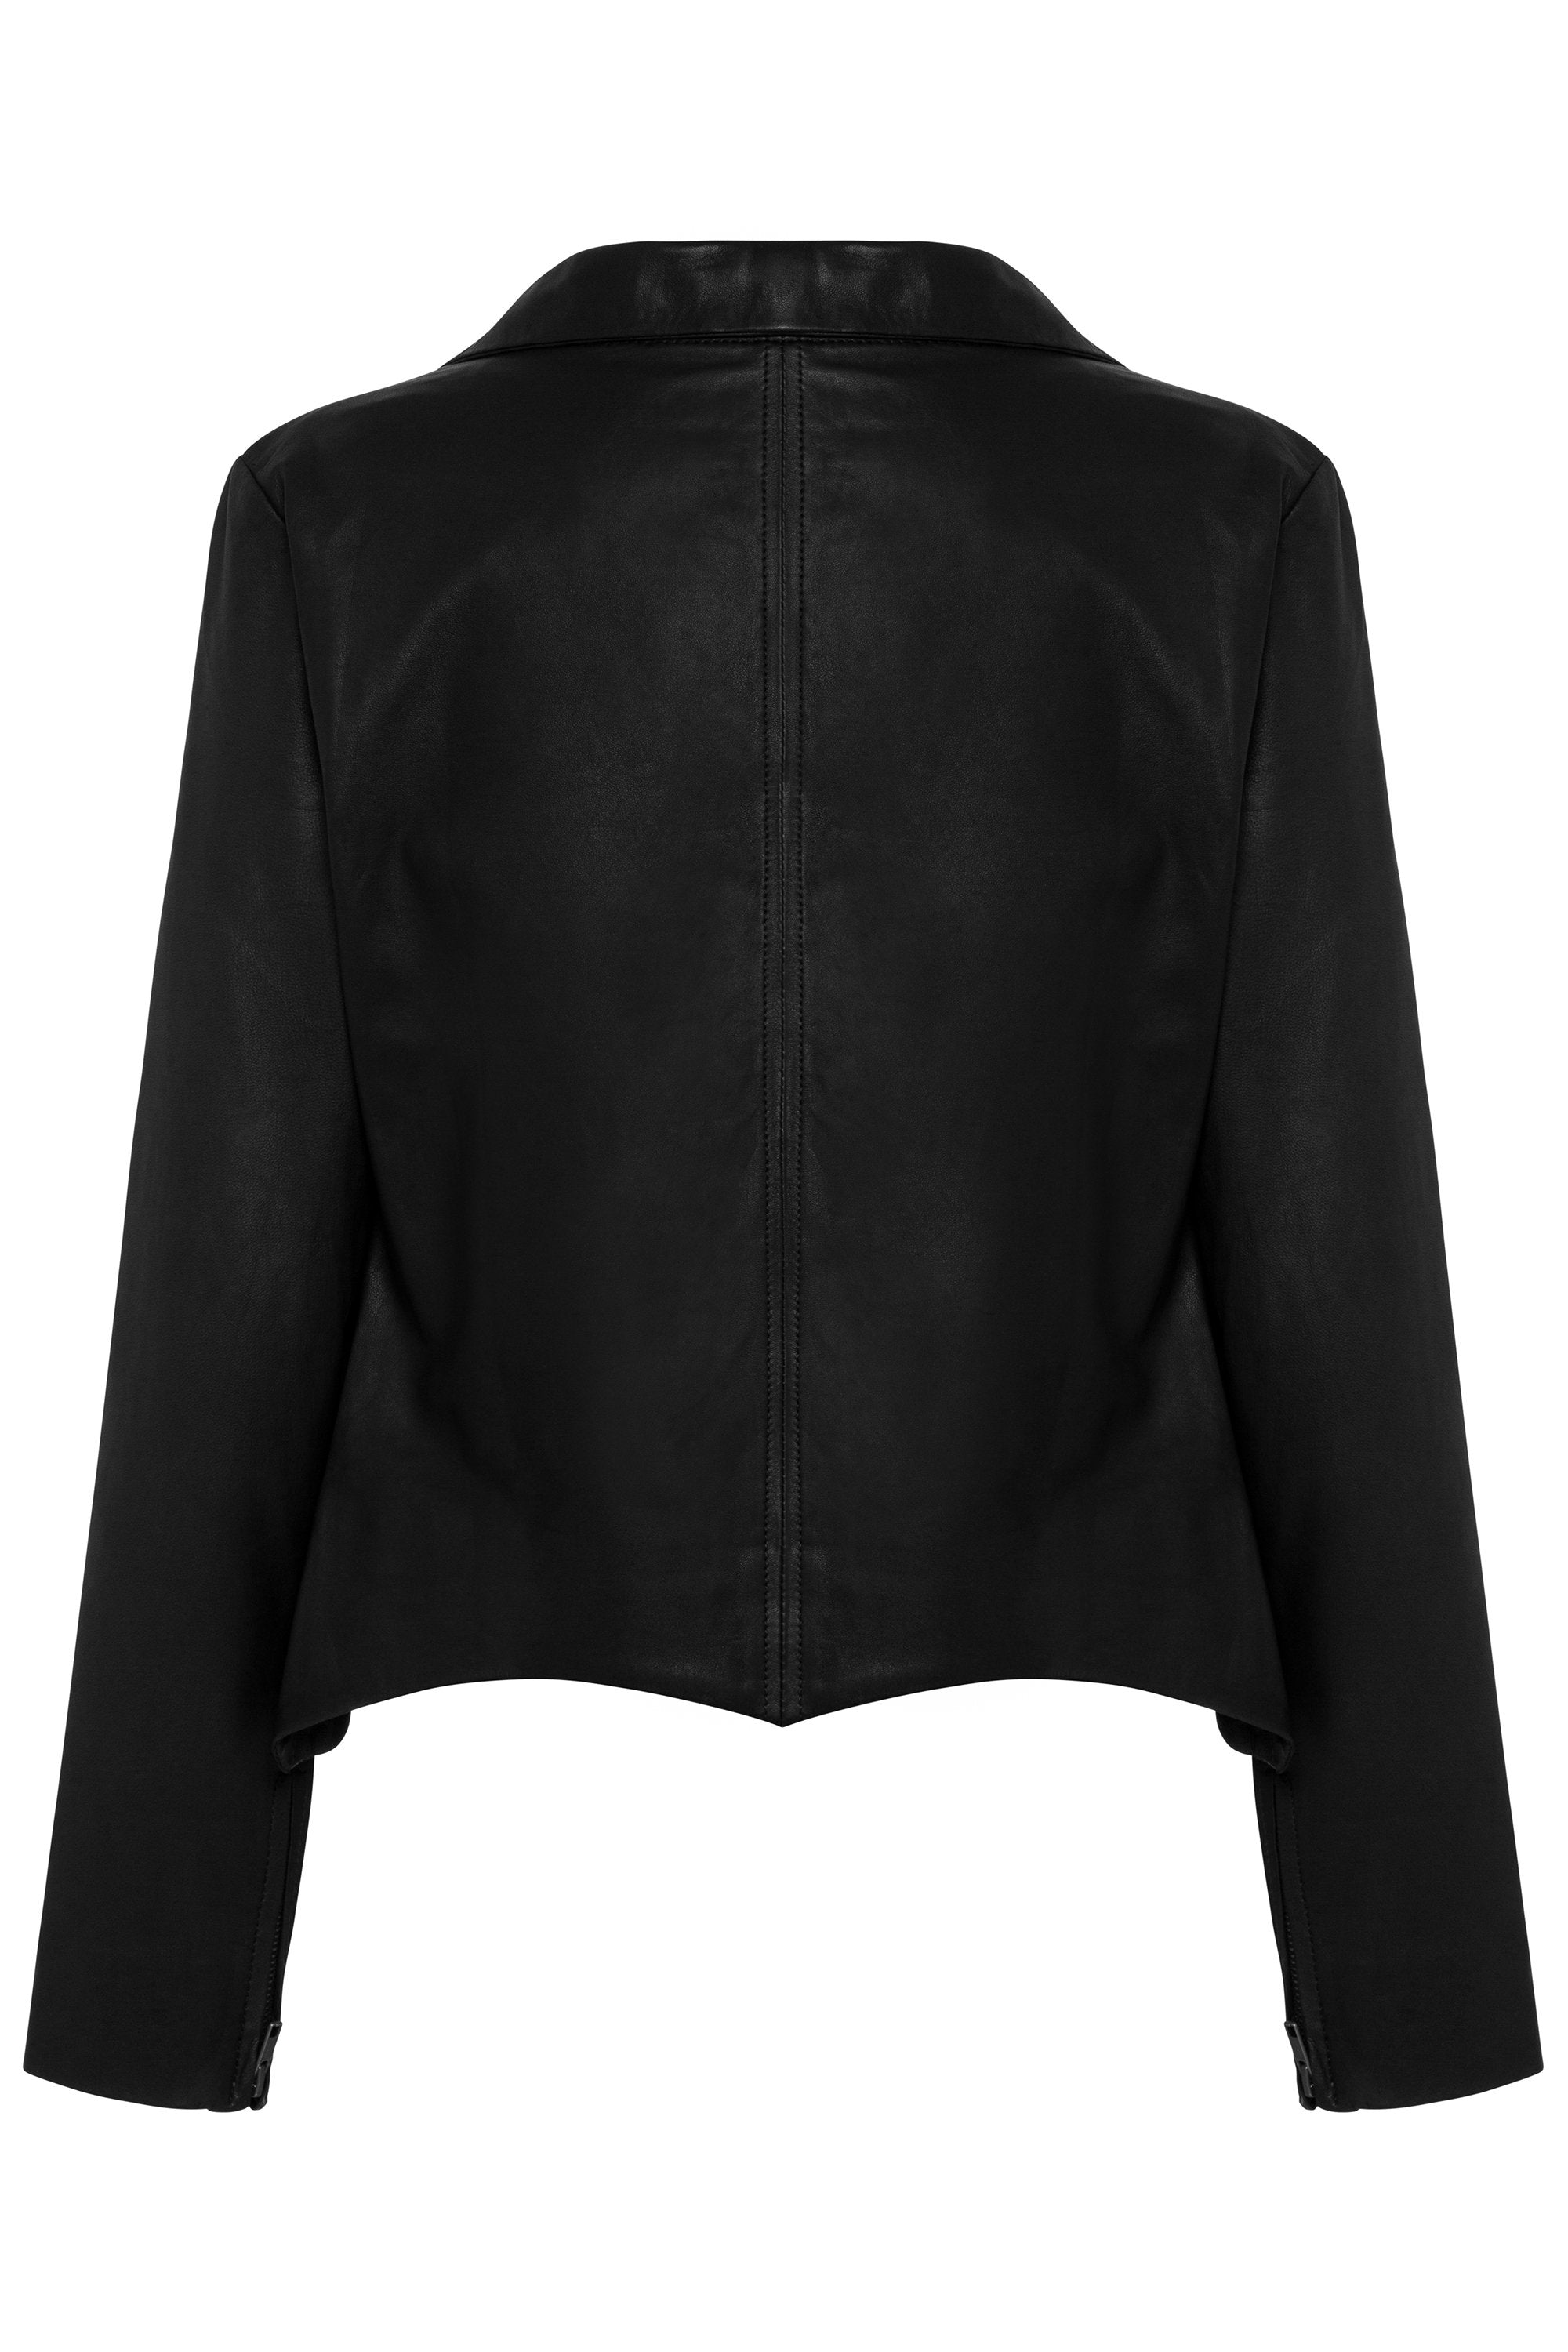 Zipper Jacket In Black Leather